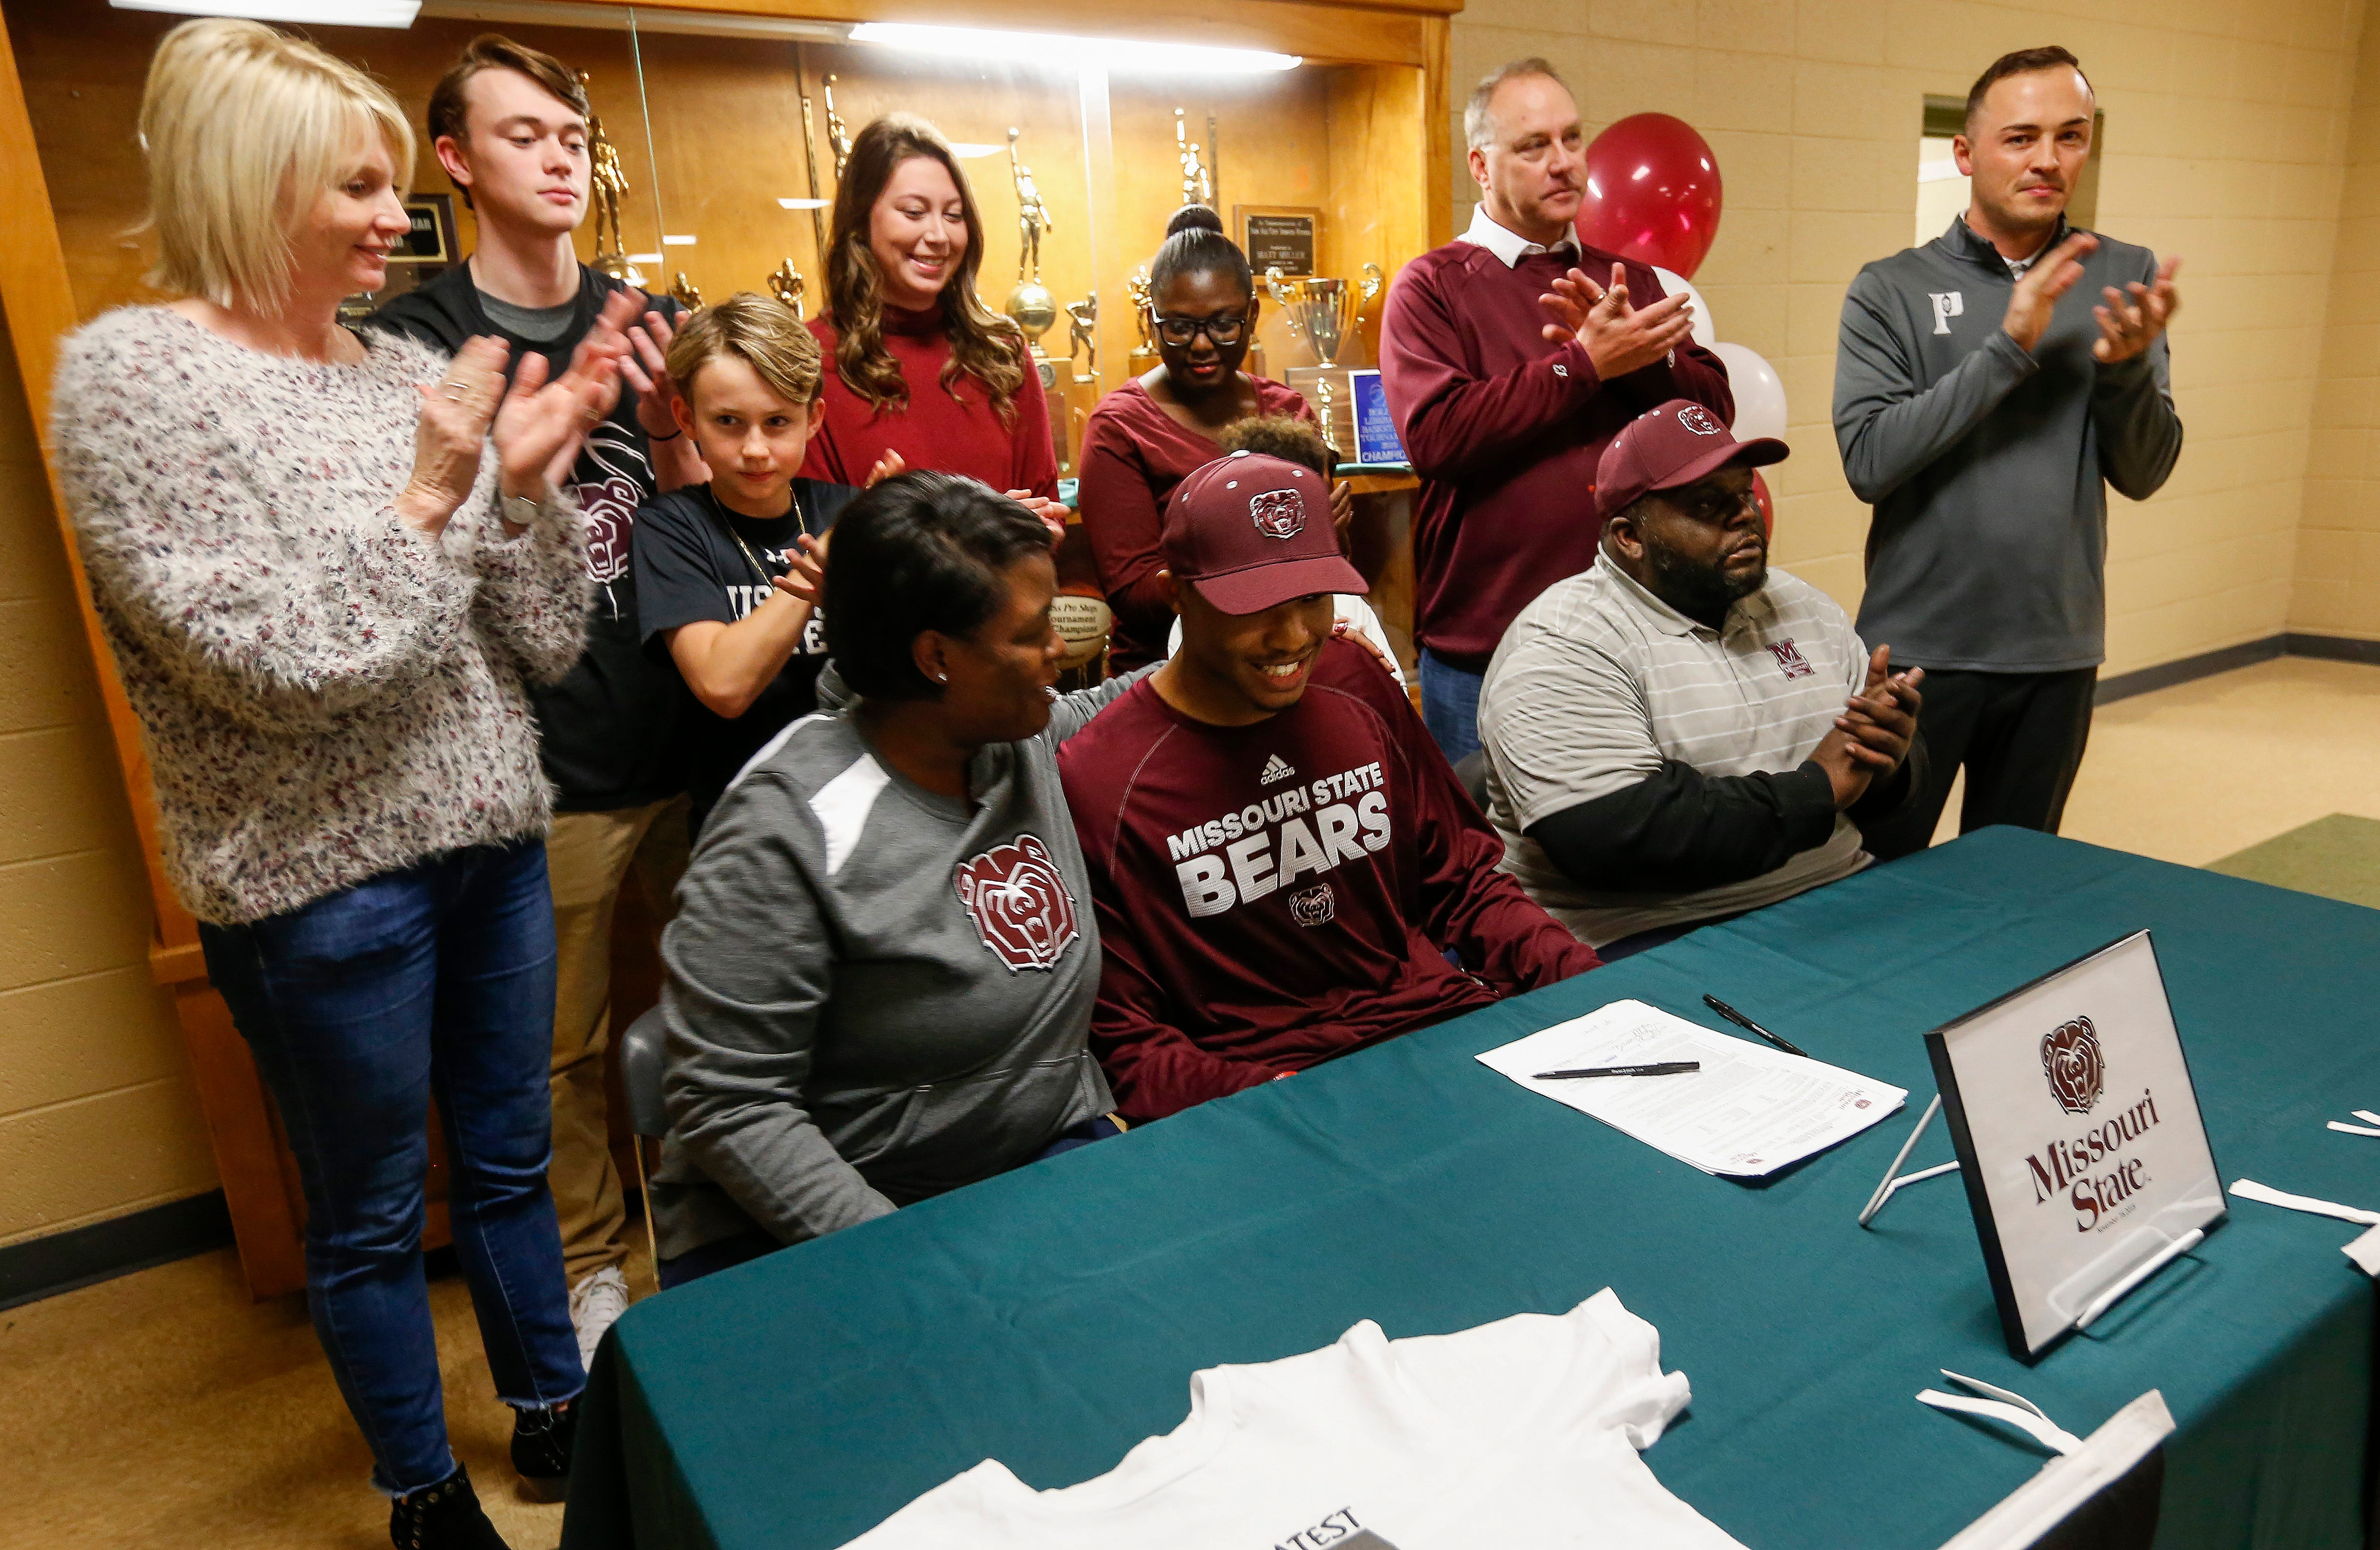 LaToya Branch puts her arm around Parkview High School forward Tyem Freeman after he signed his letter of intent to play basketball at Missouri State University on Friday, Nov. 16, 2018.